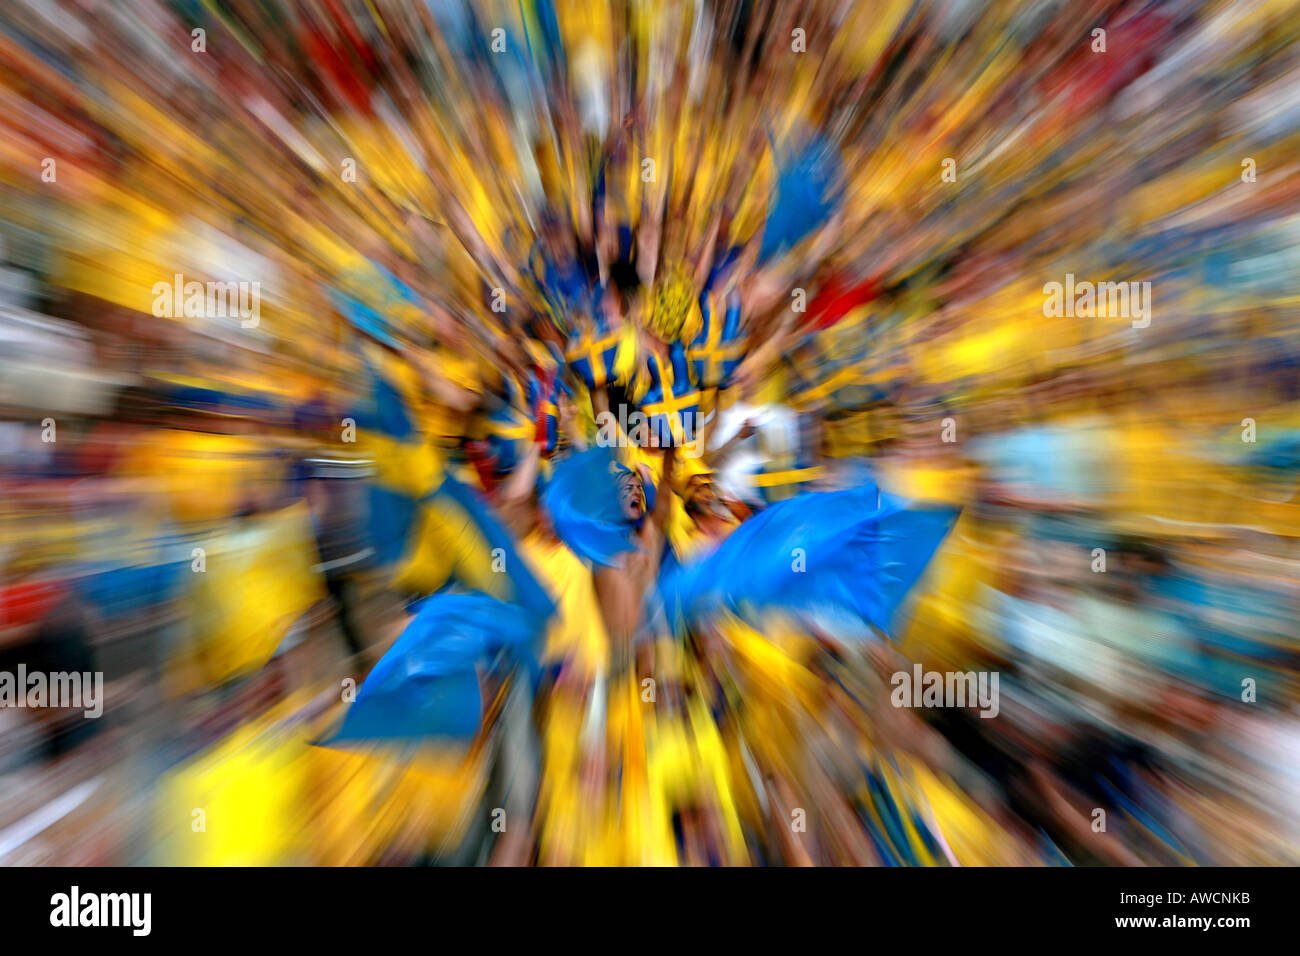 Zoom burst effect of Swedish fans in the crowd during the 2006 World Cup - Stock Image